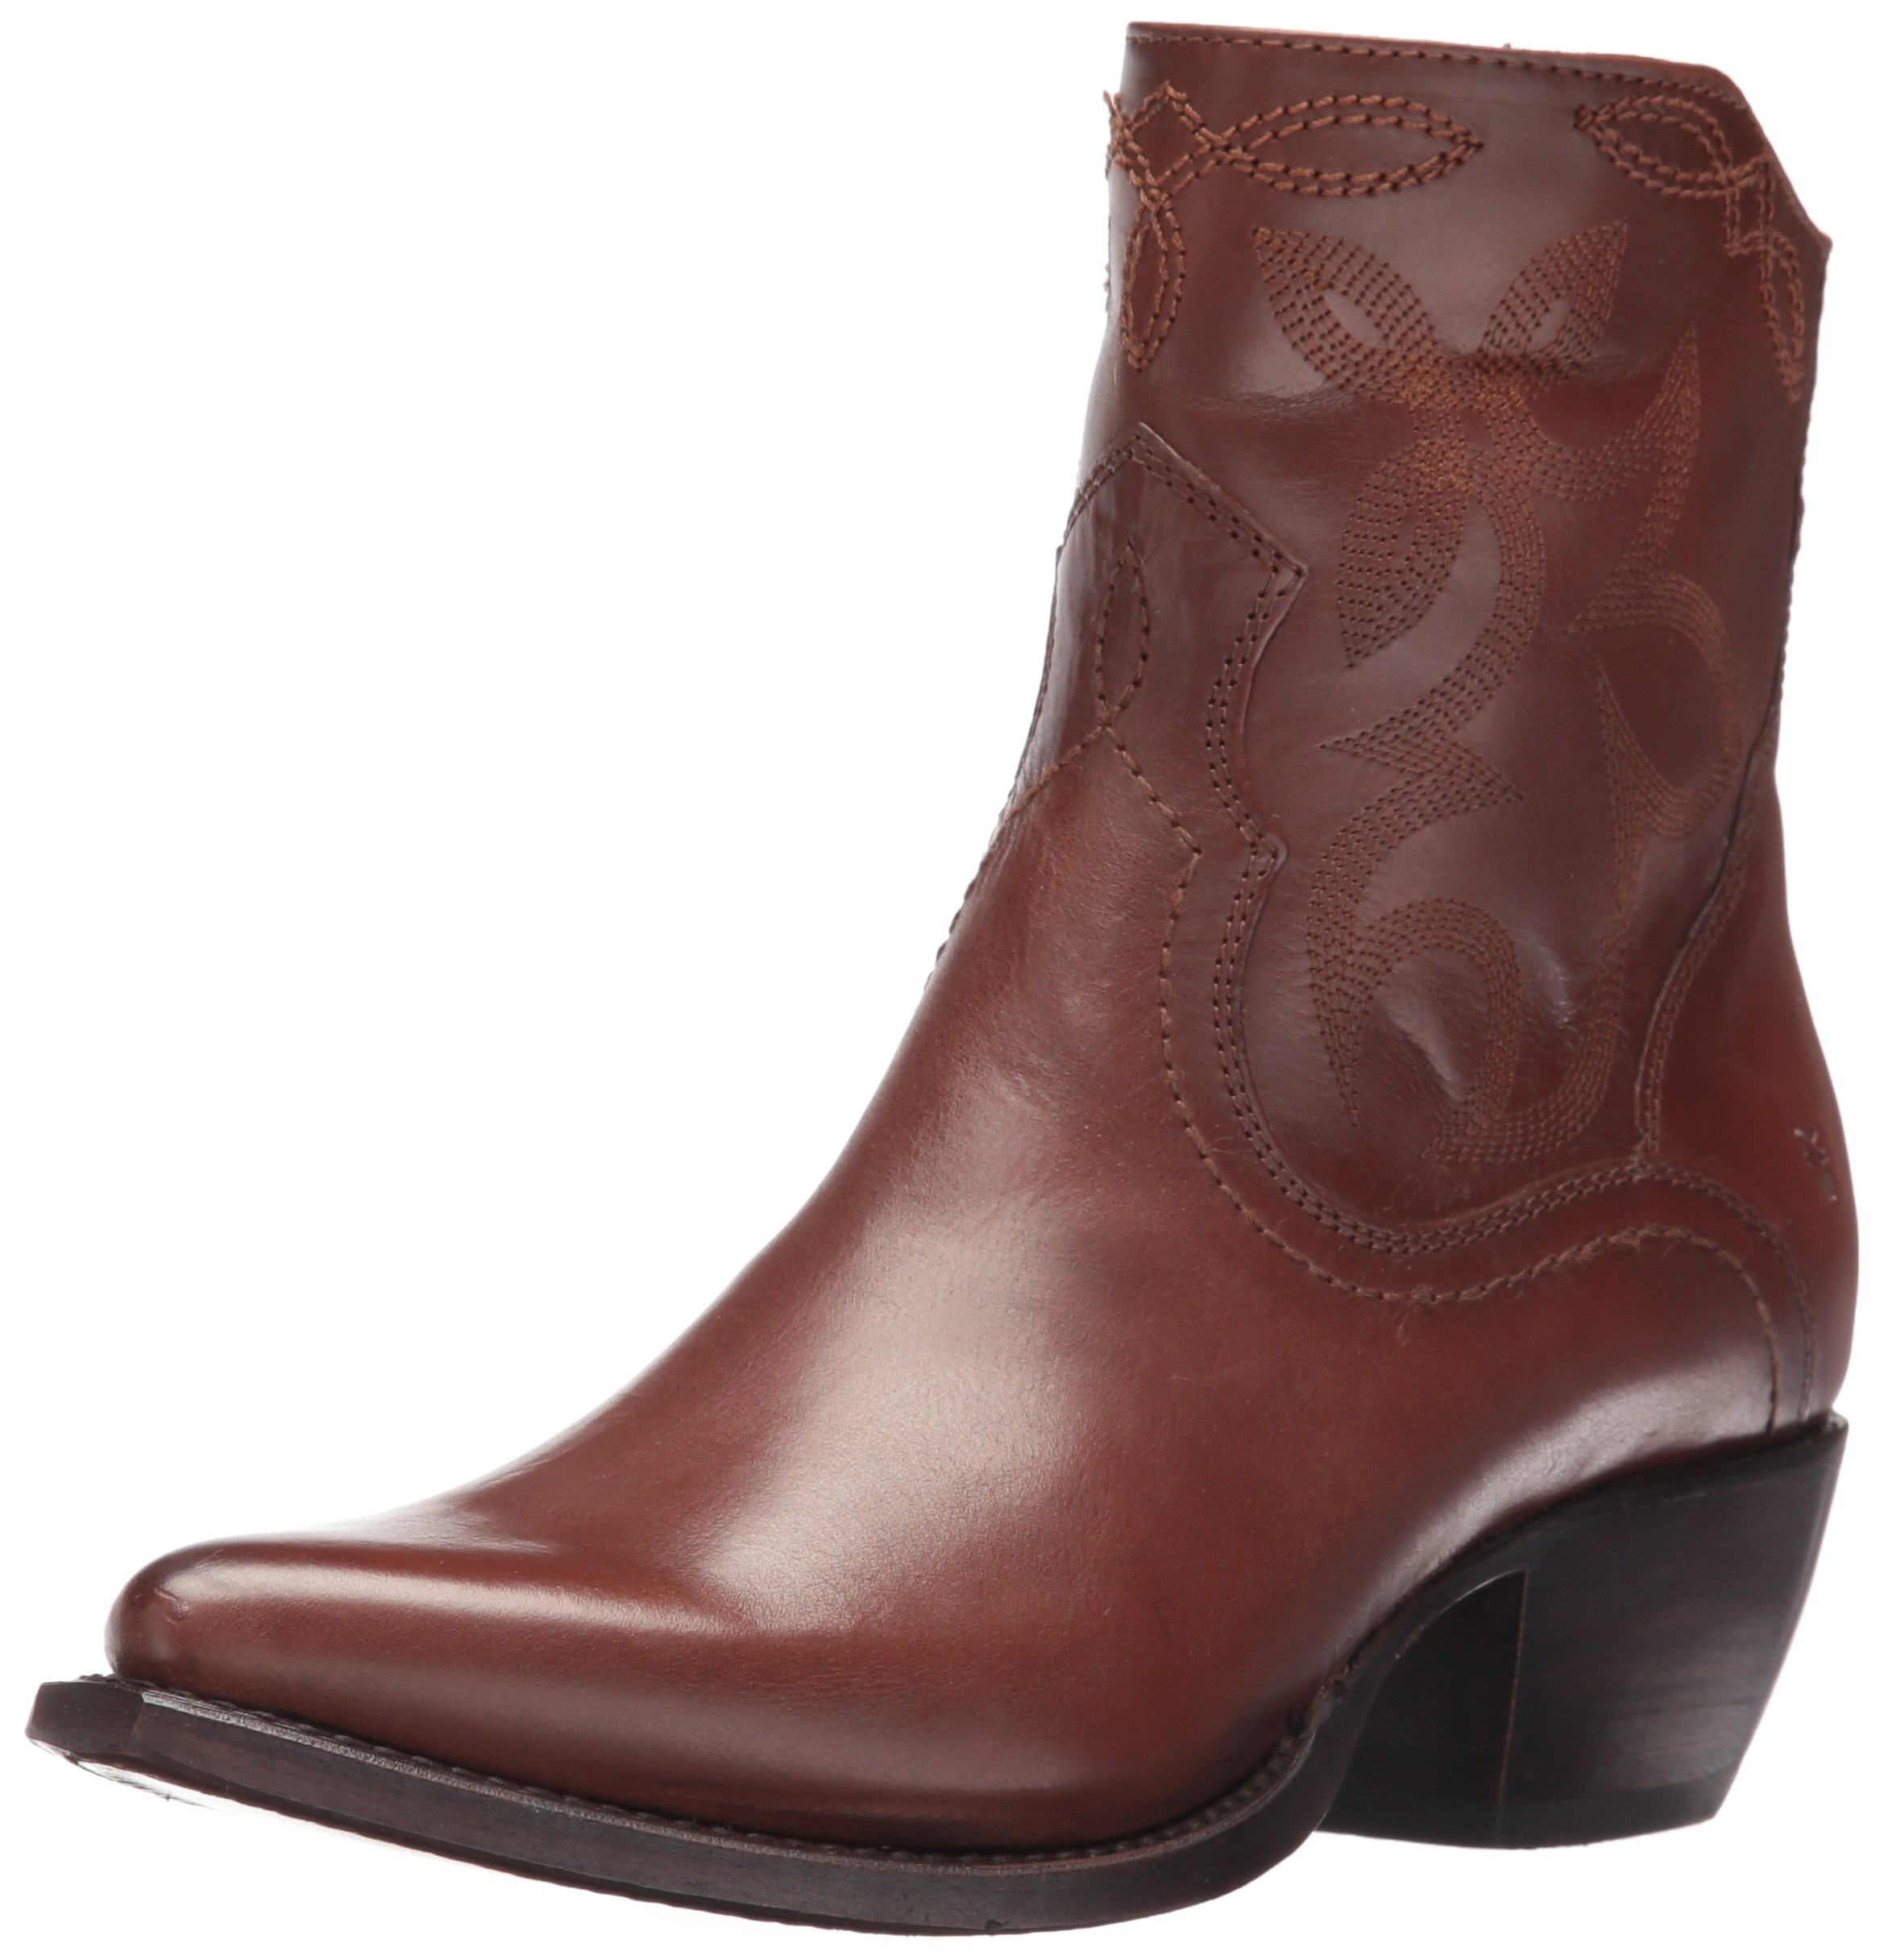 FRYE Women's Shane Embroidered Short Western Boot, Whiskey, 10 M US